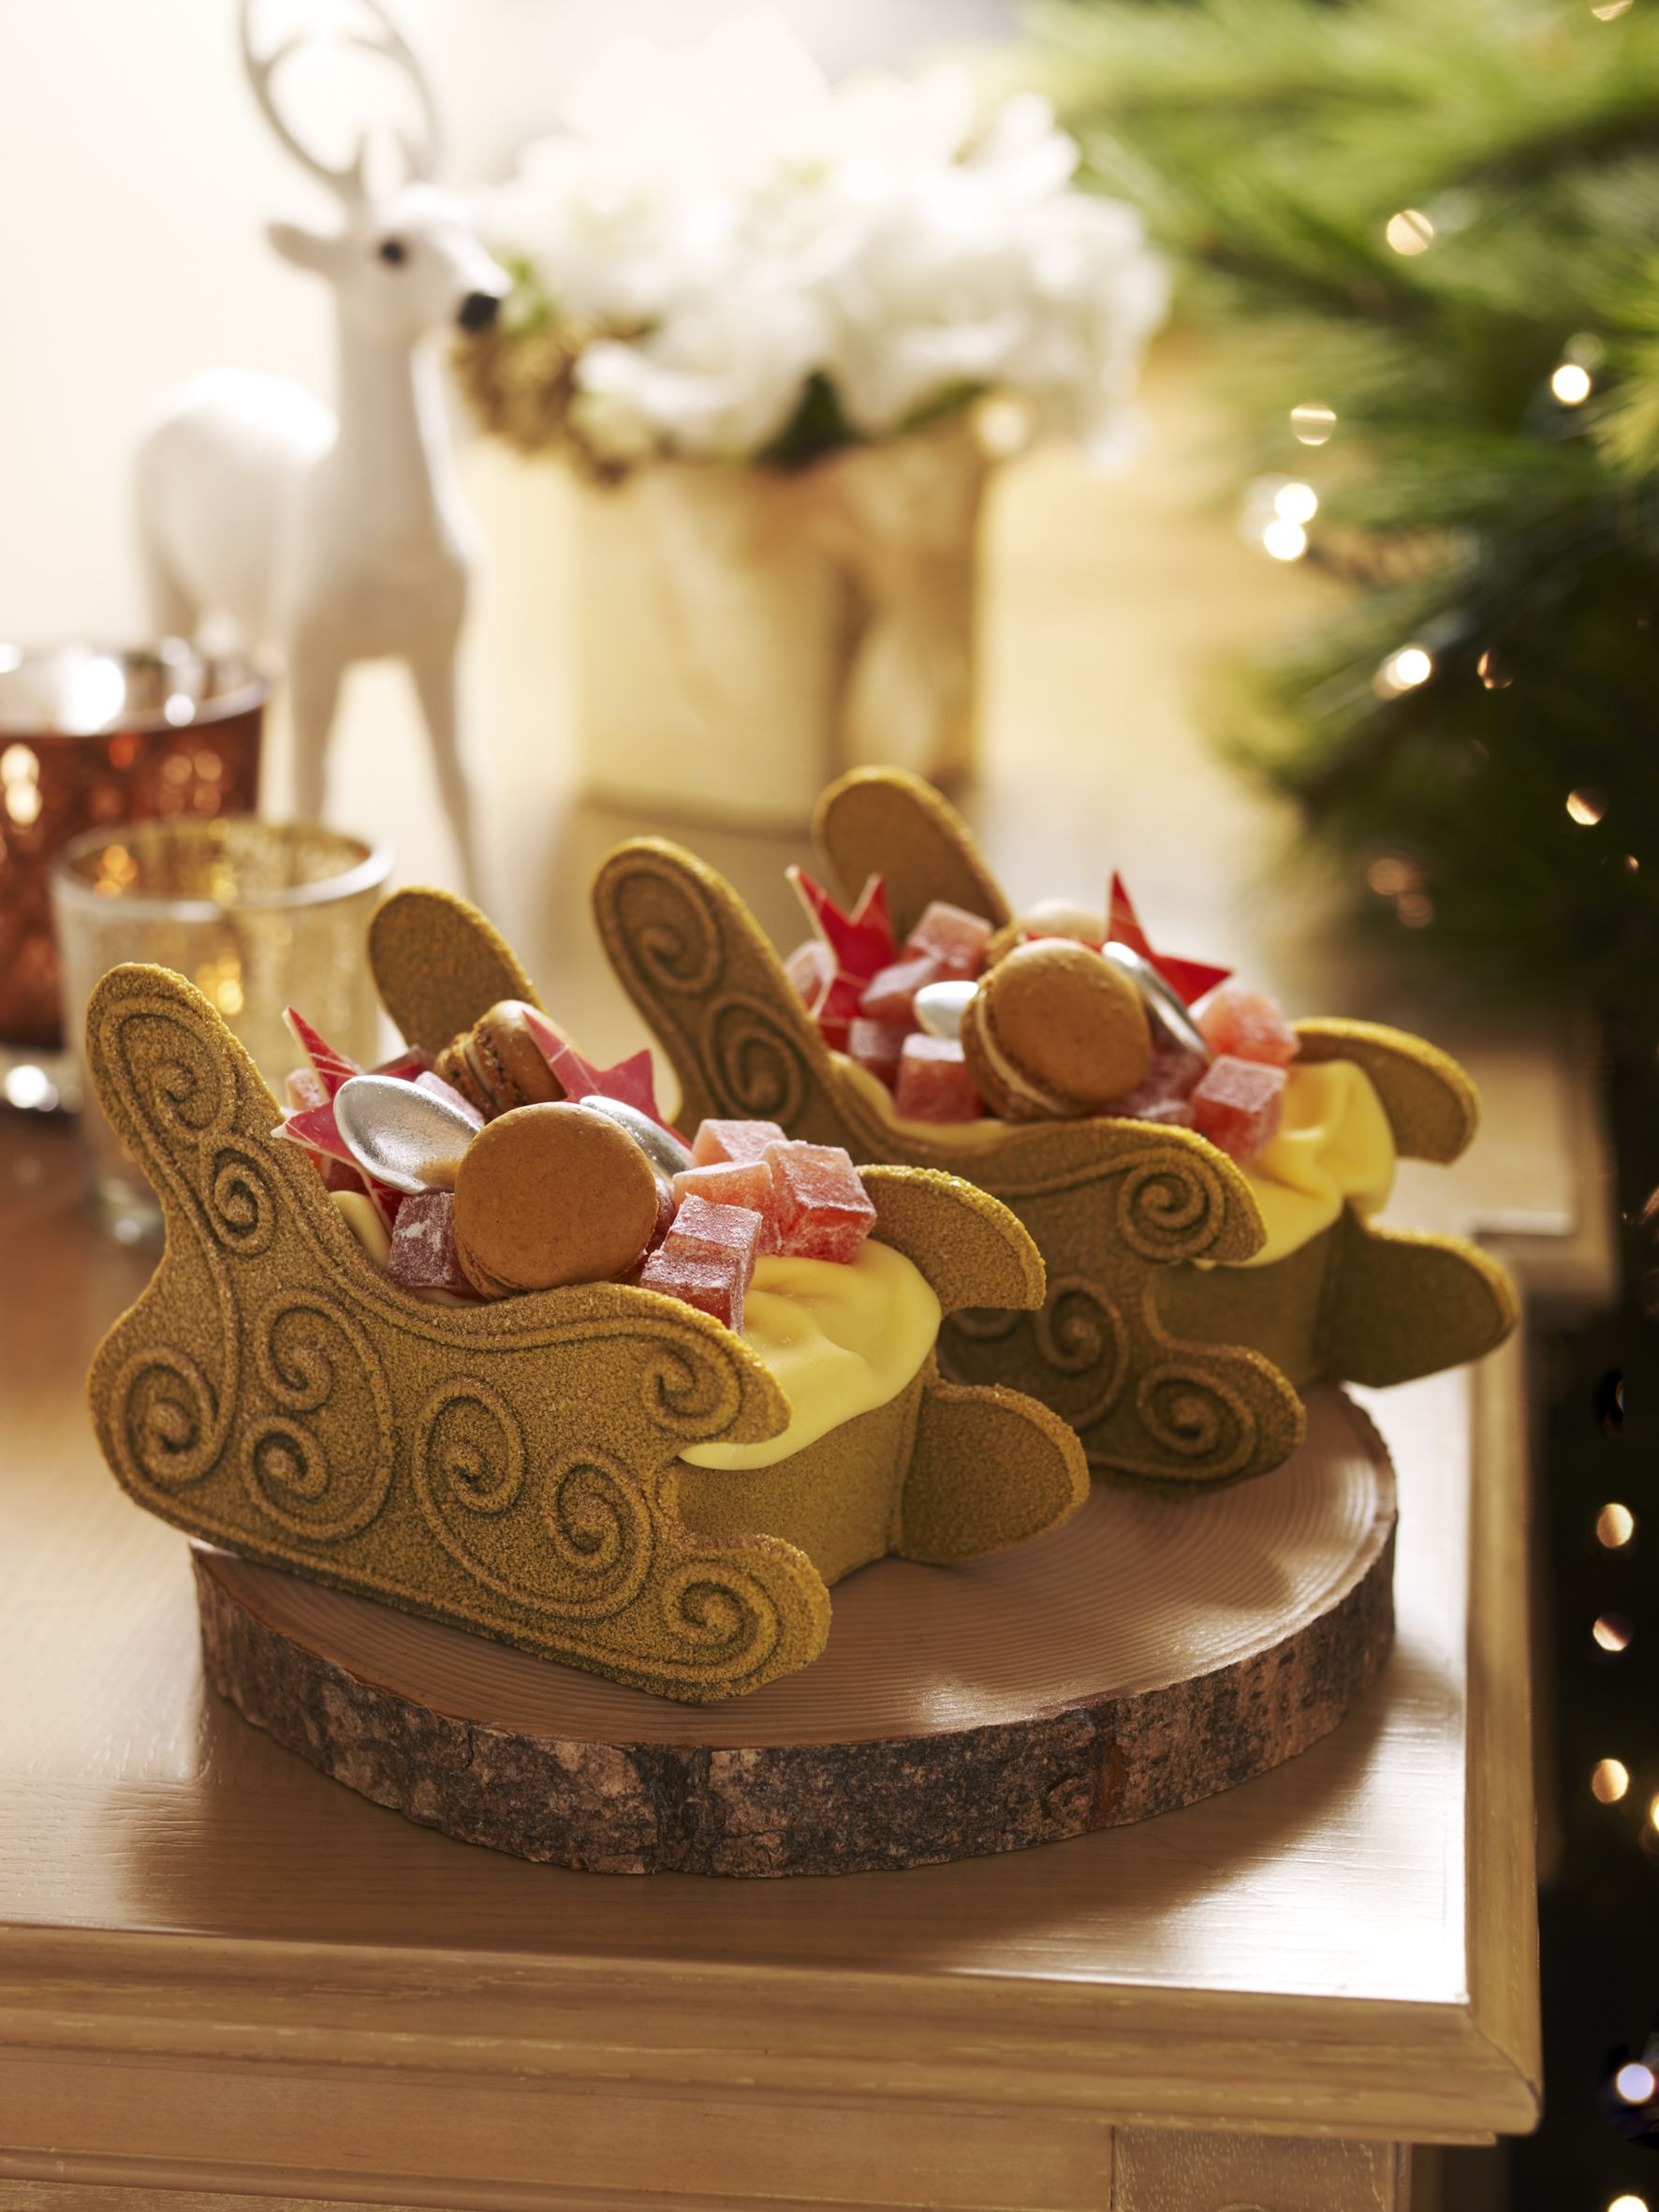 Santa s Sleigh Hazelnut Pound Cake with Macarons & Can d